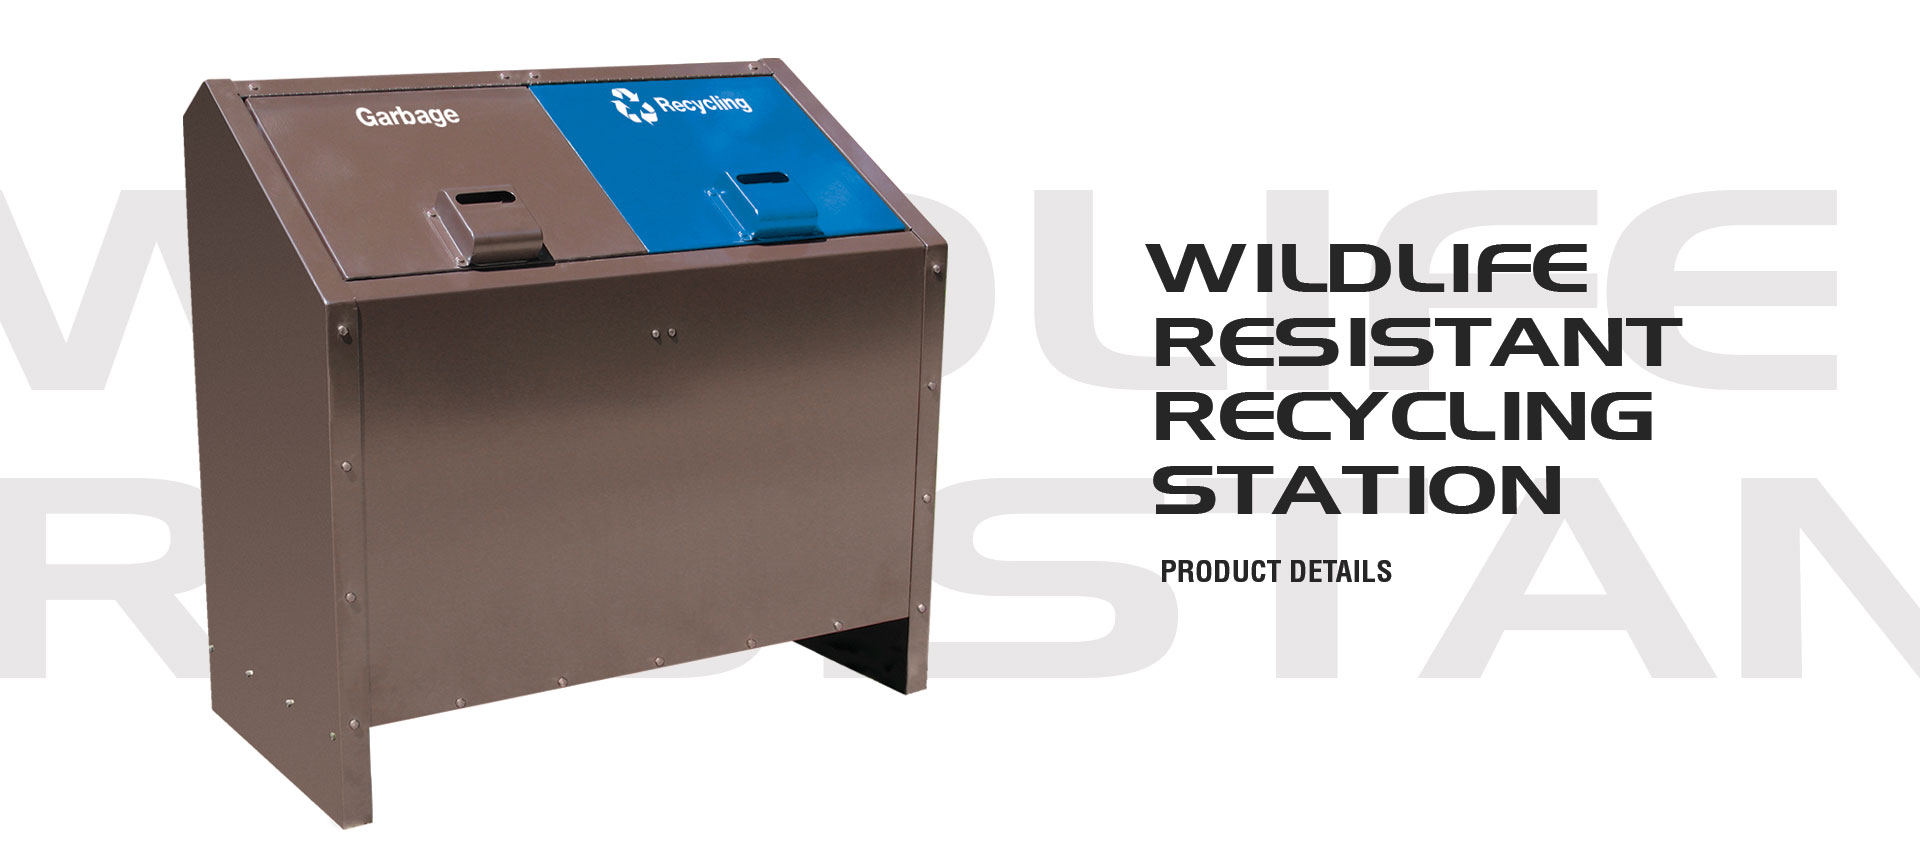 Wildlife Resistant Recycling